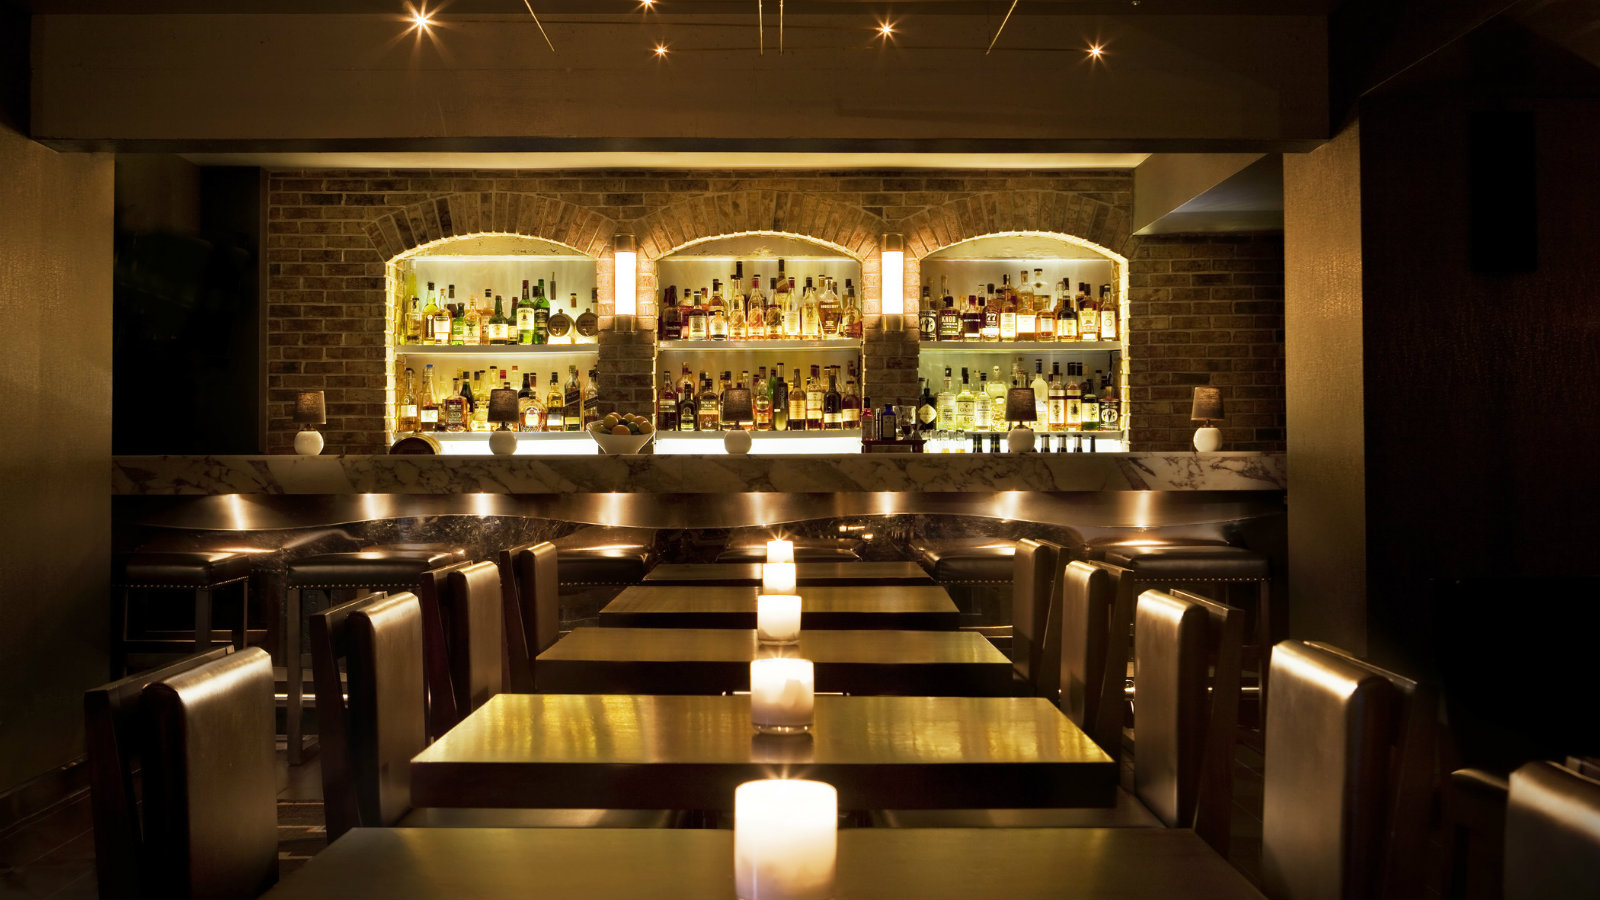 W Washington D.C. - Root Cellar Whiskey Bar